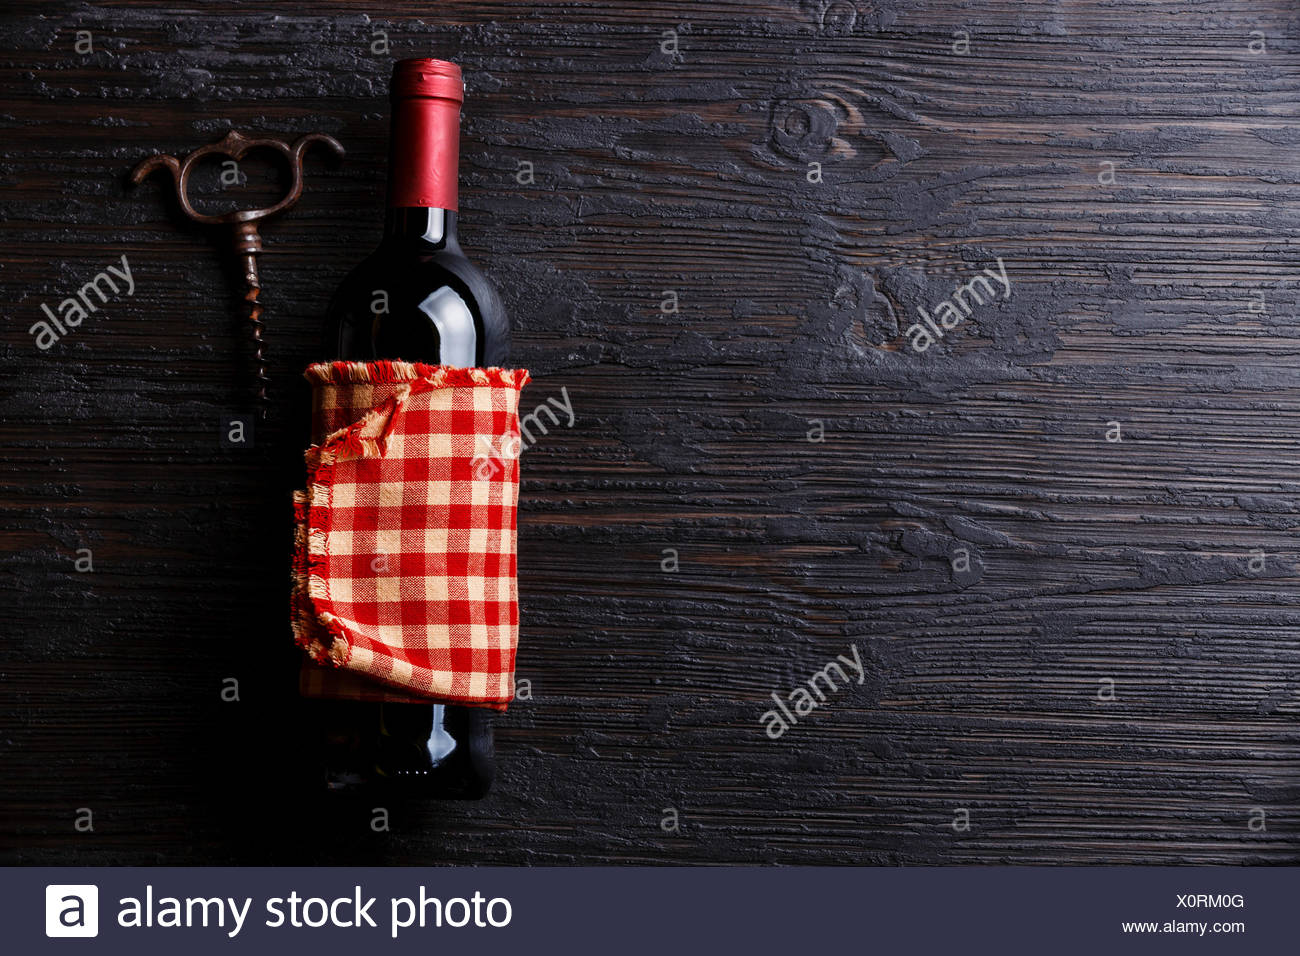 Wine bottle and corkscrew on Black Burned wooden background copy space - Stock Image